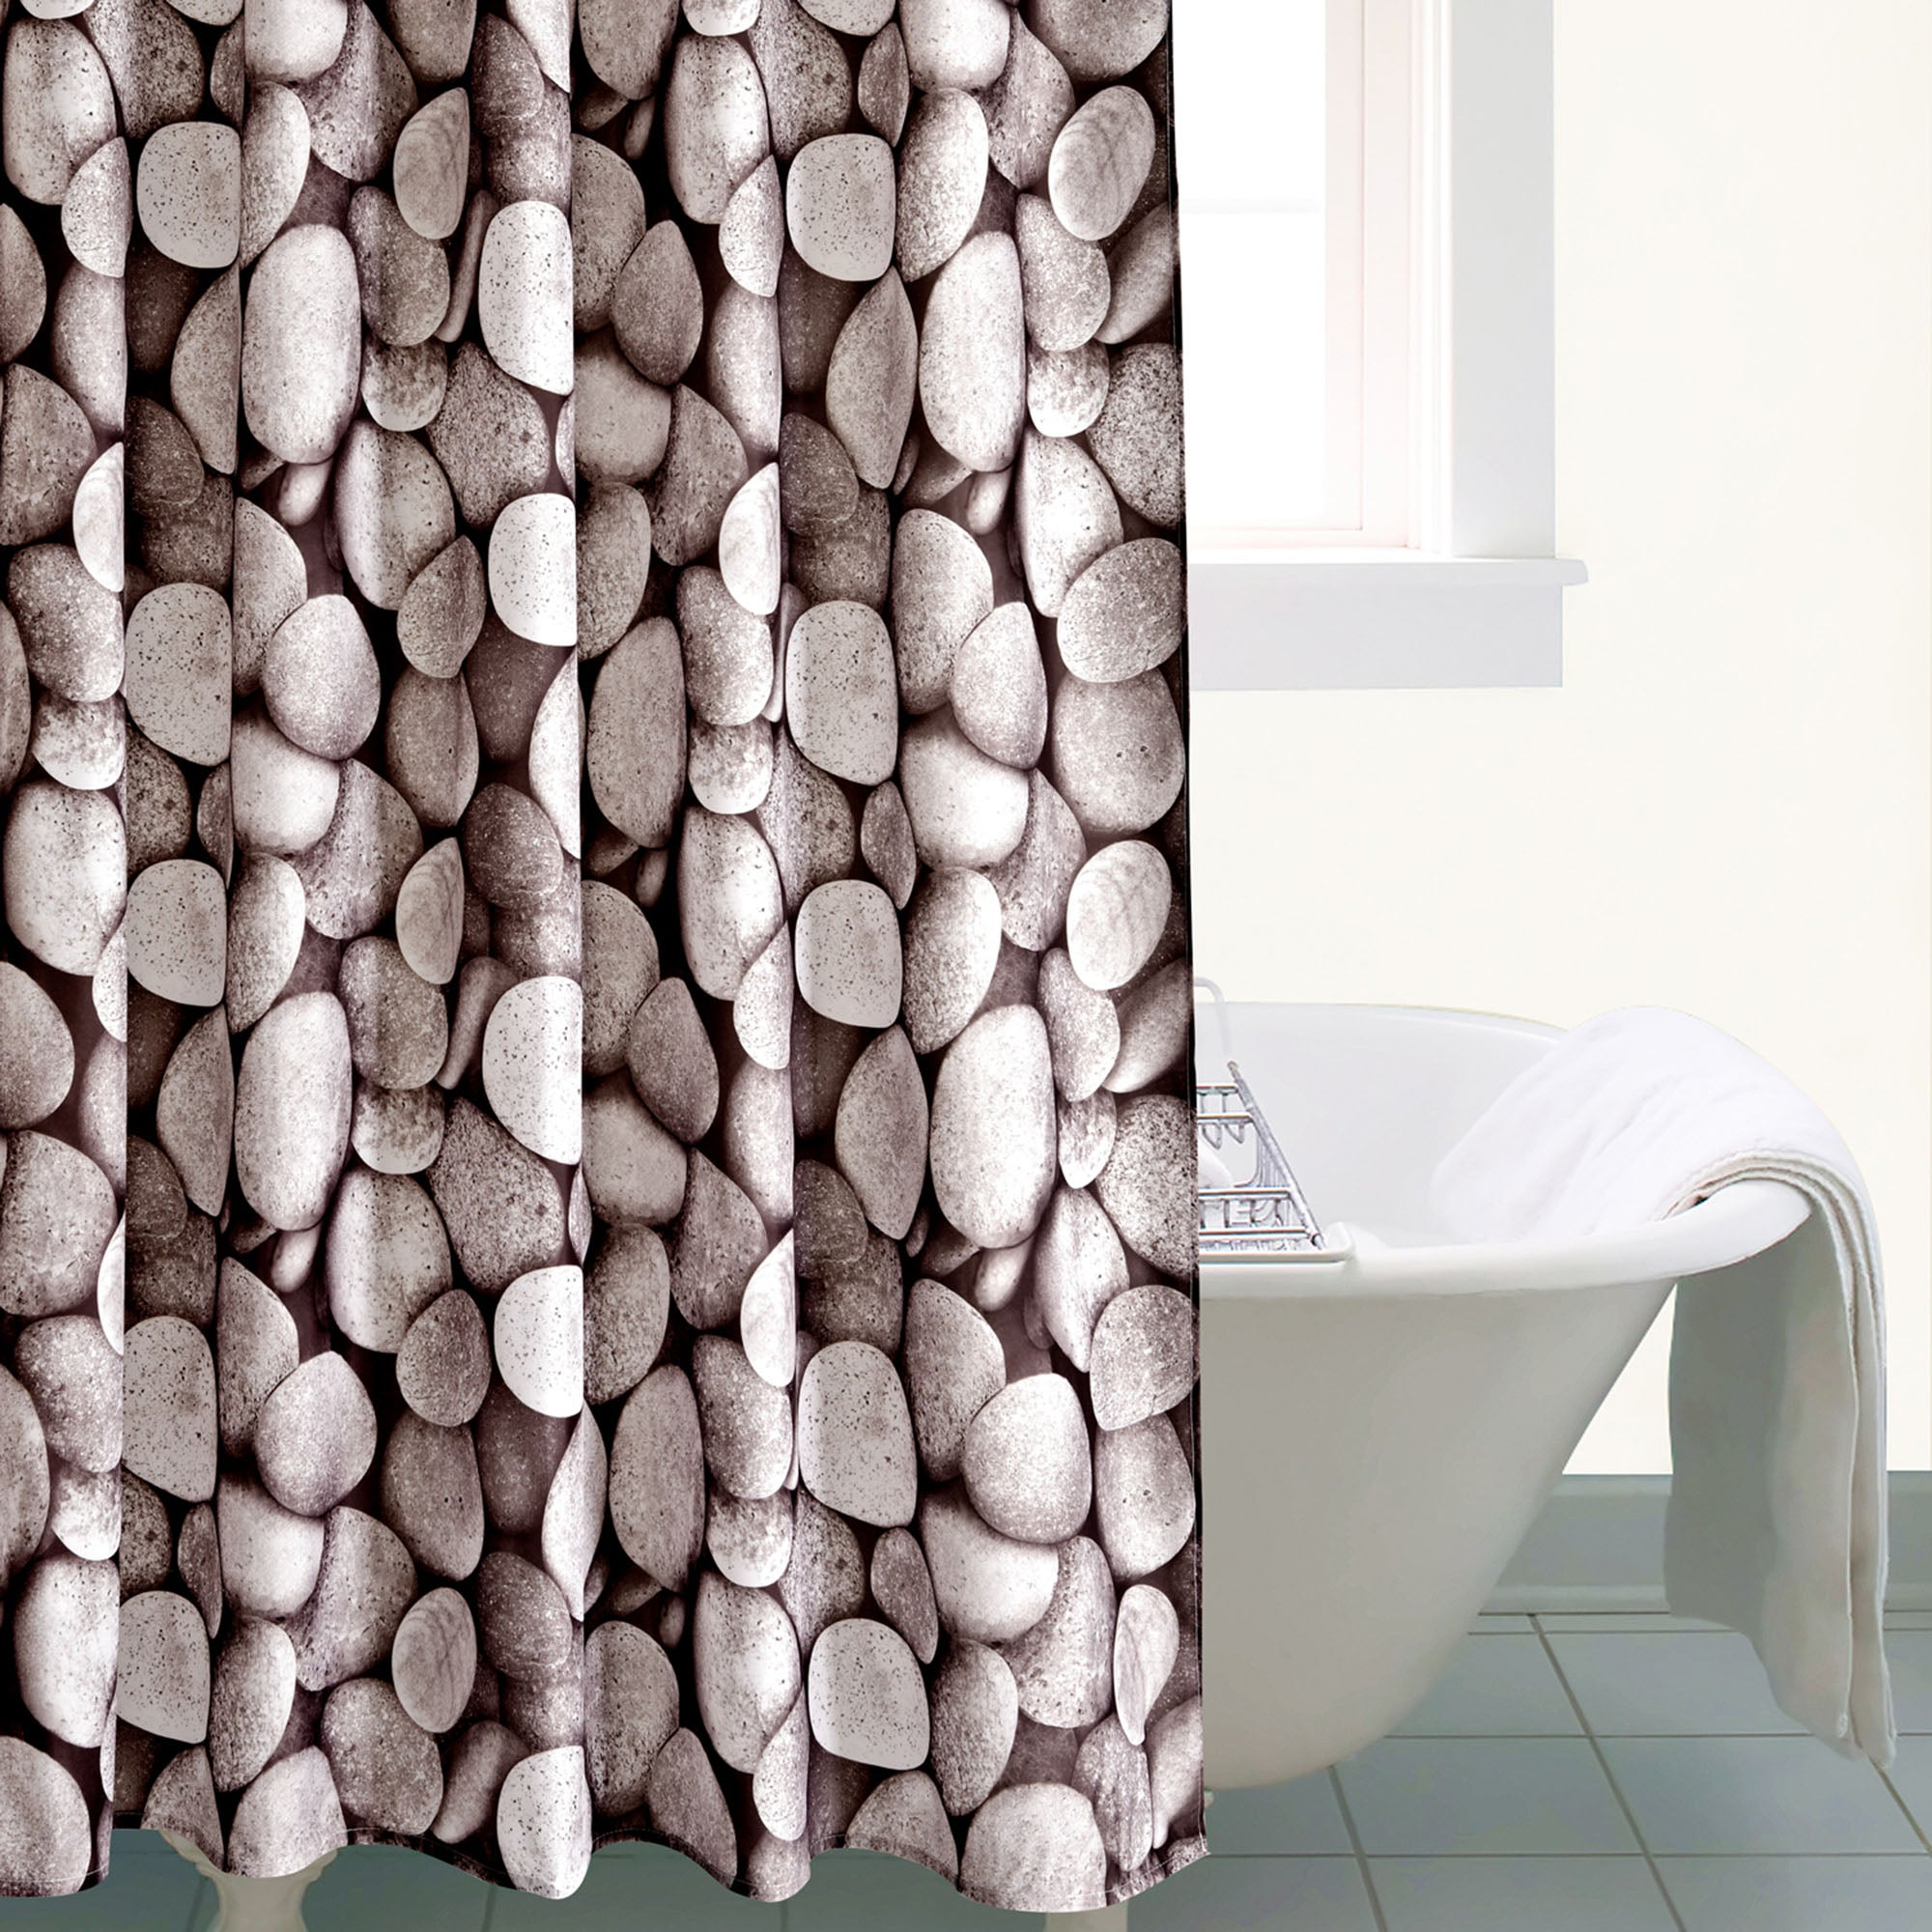 Photo of Pebbles shower curtain grey